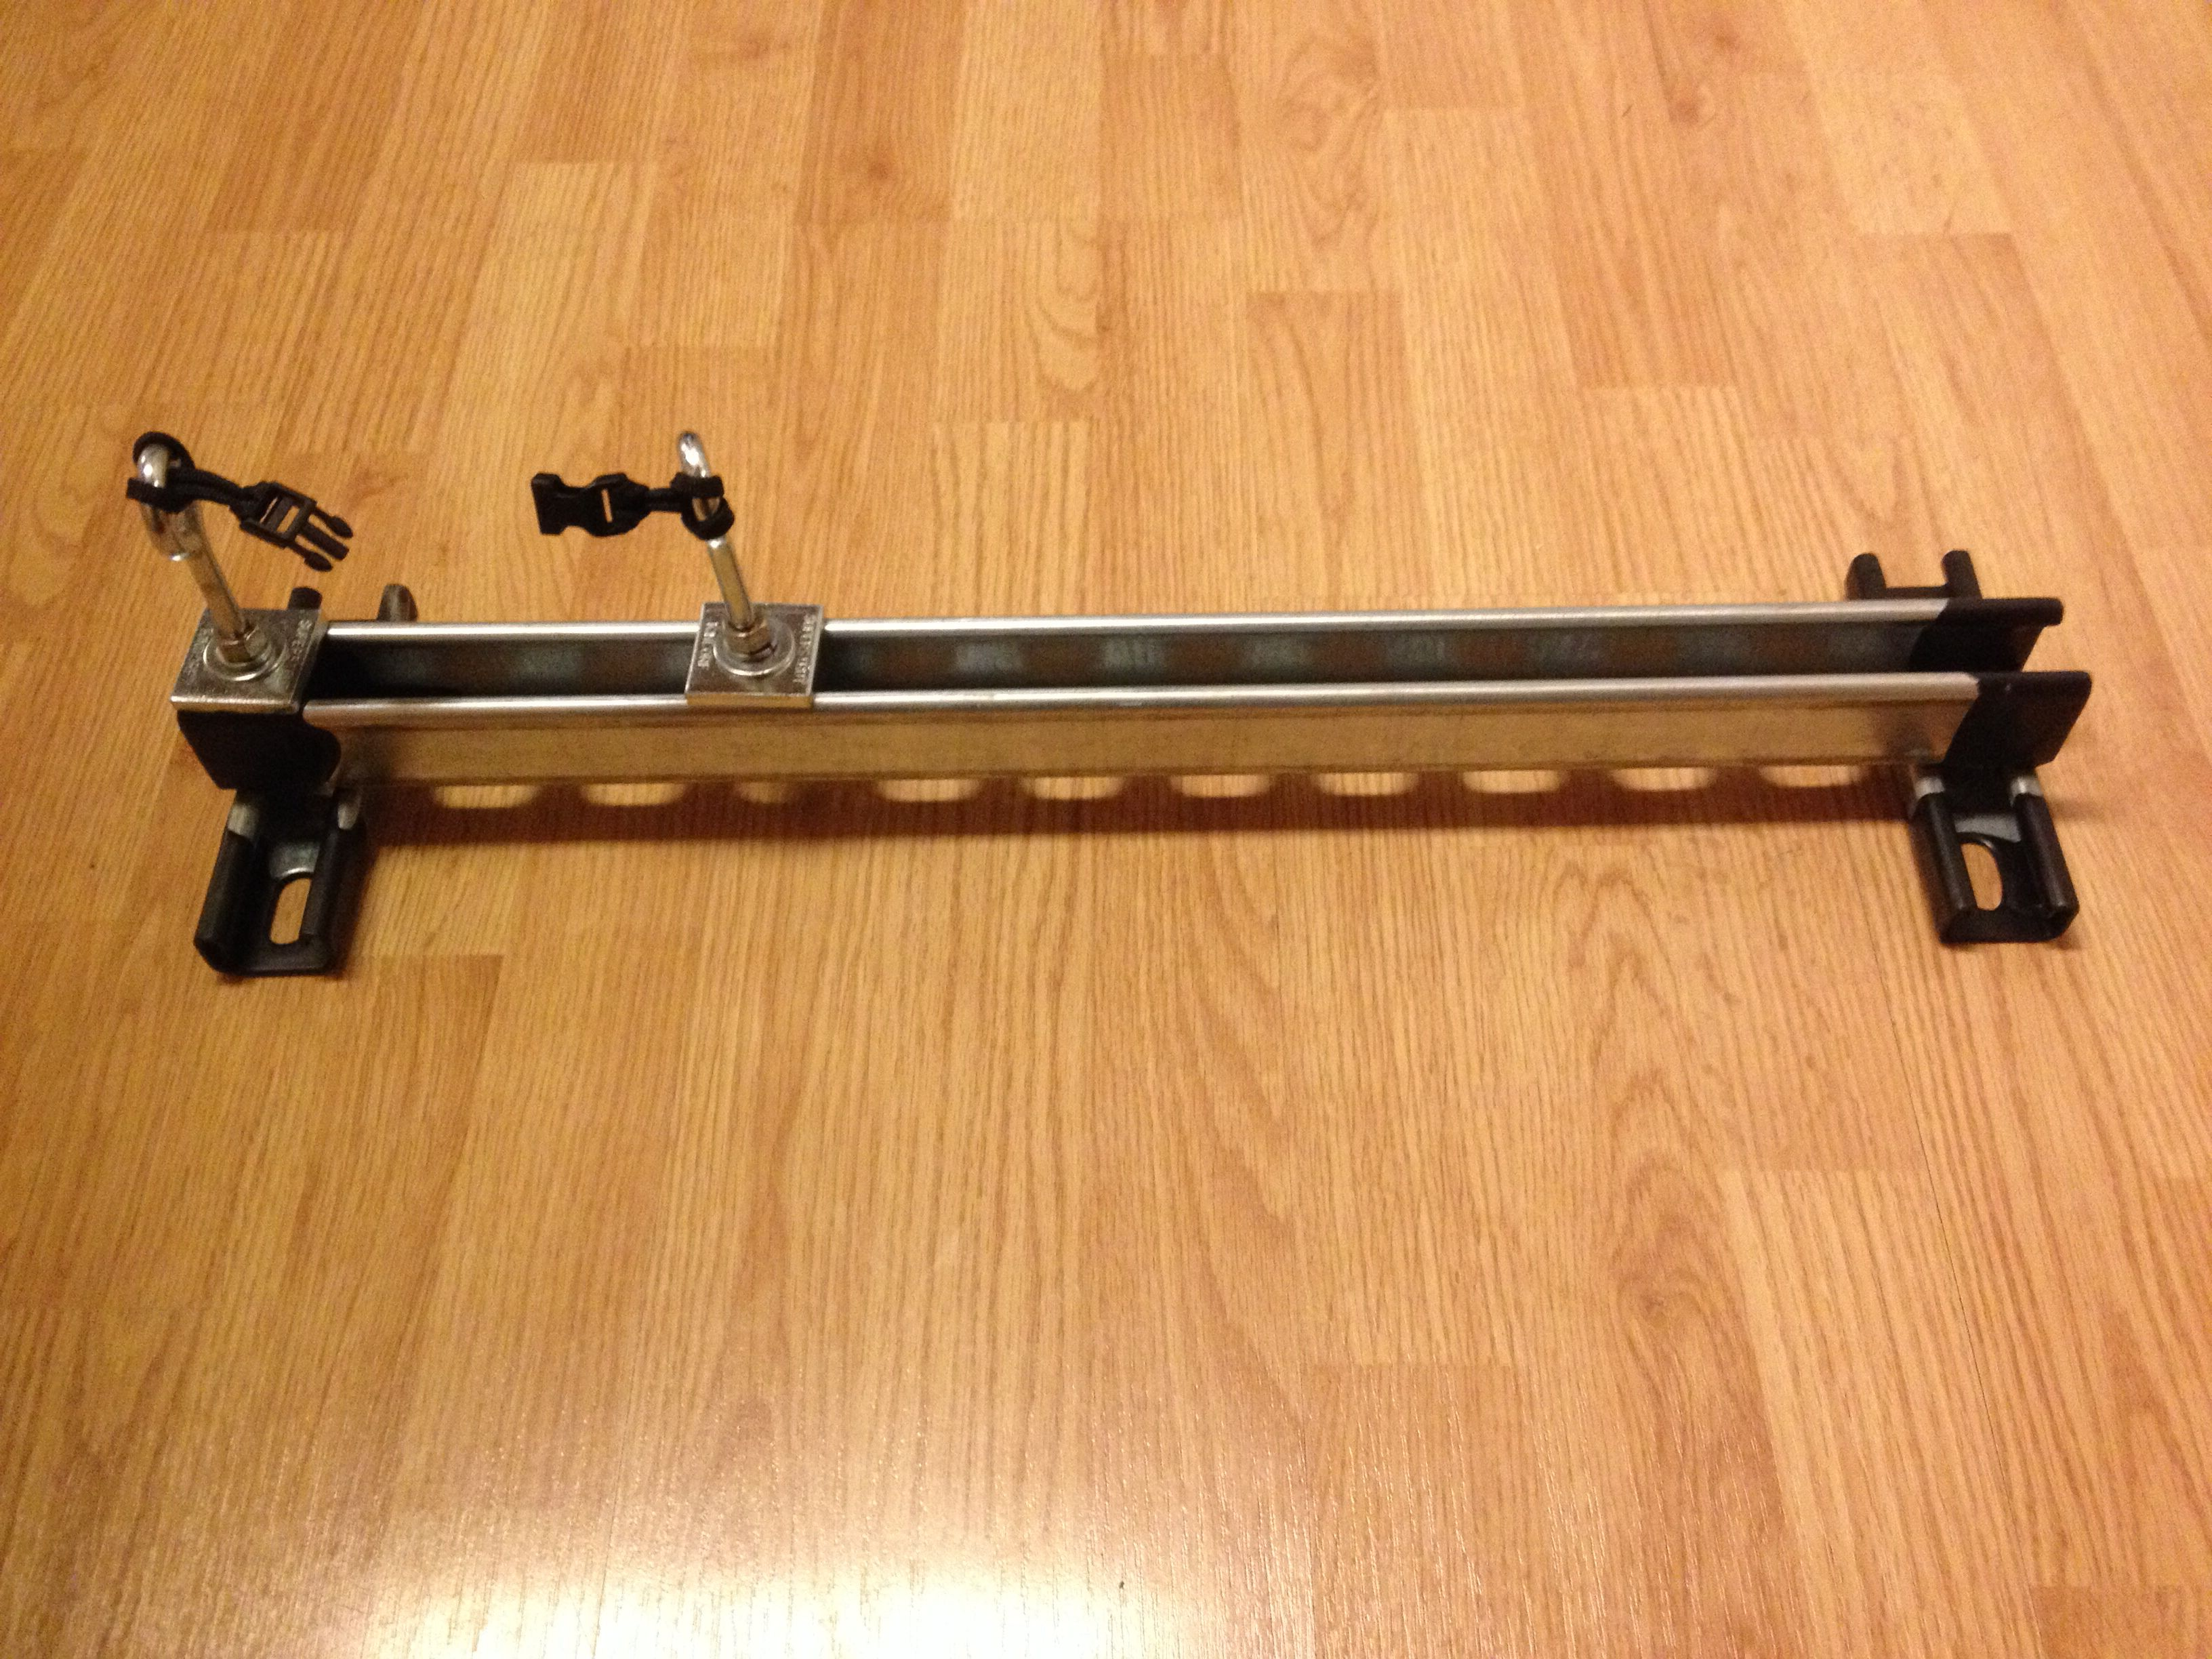 Paracord Jig From Unistrut With Images Paracord Jig Paracord Diy